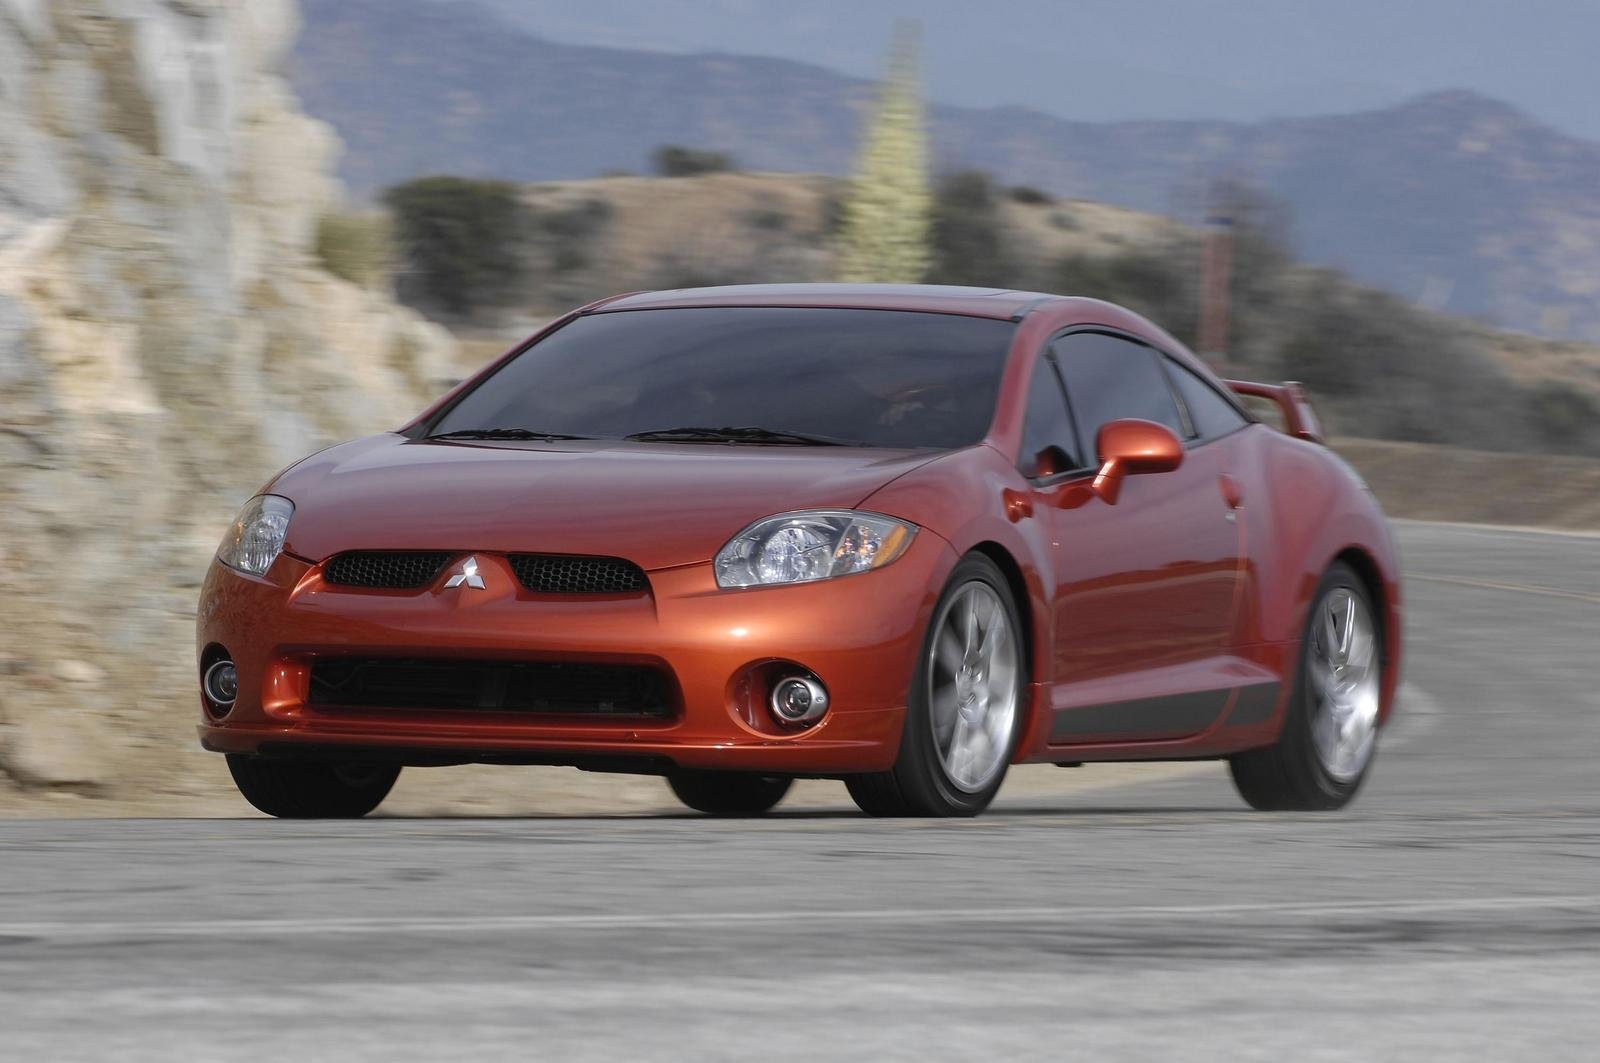 2008 mitsubishi eclipse picture 217023 car review. Black Bedroom Furniture Sets. Home Design Ideas